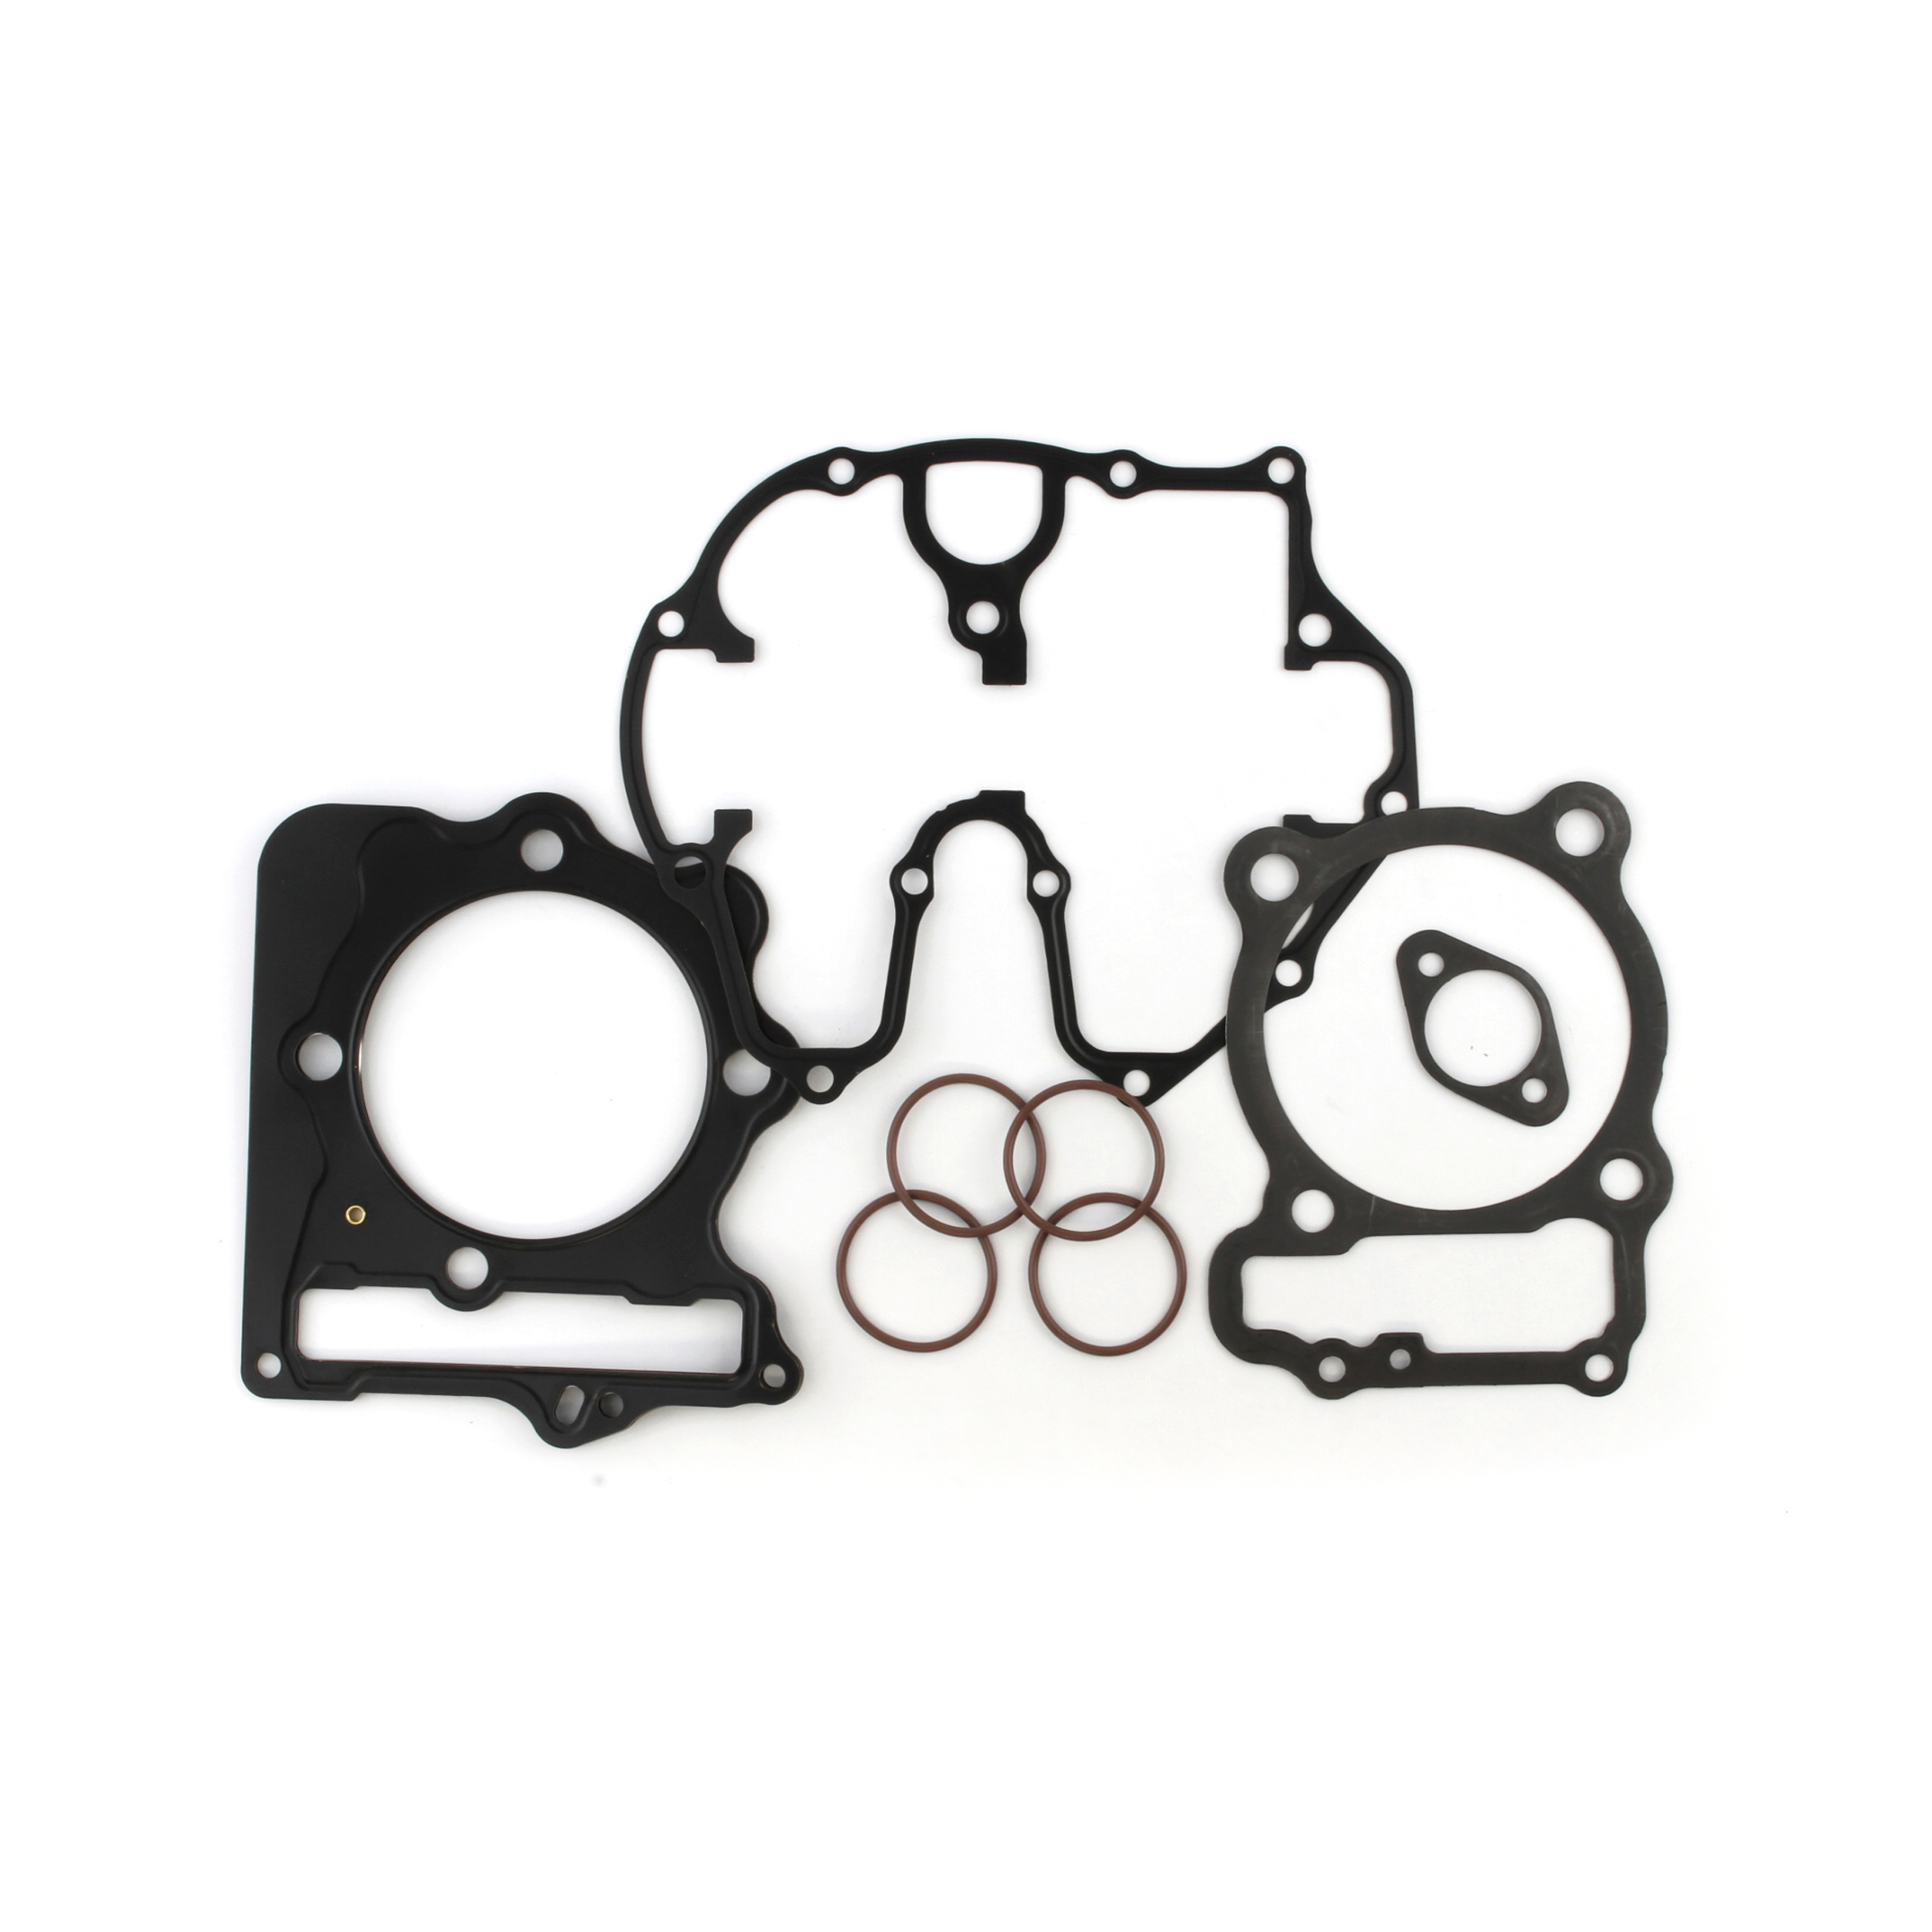 Cometic C4011CS Hi-Performance Snowmobile Gasket Kit